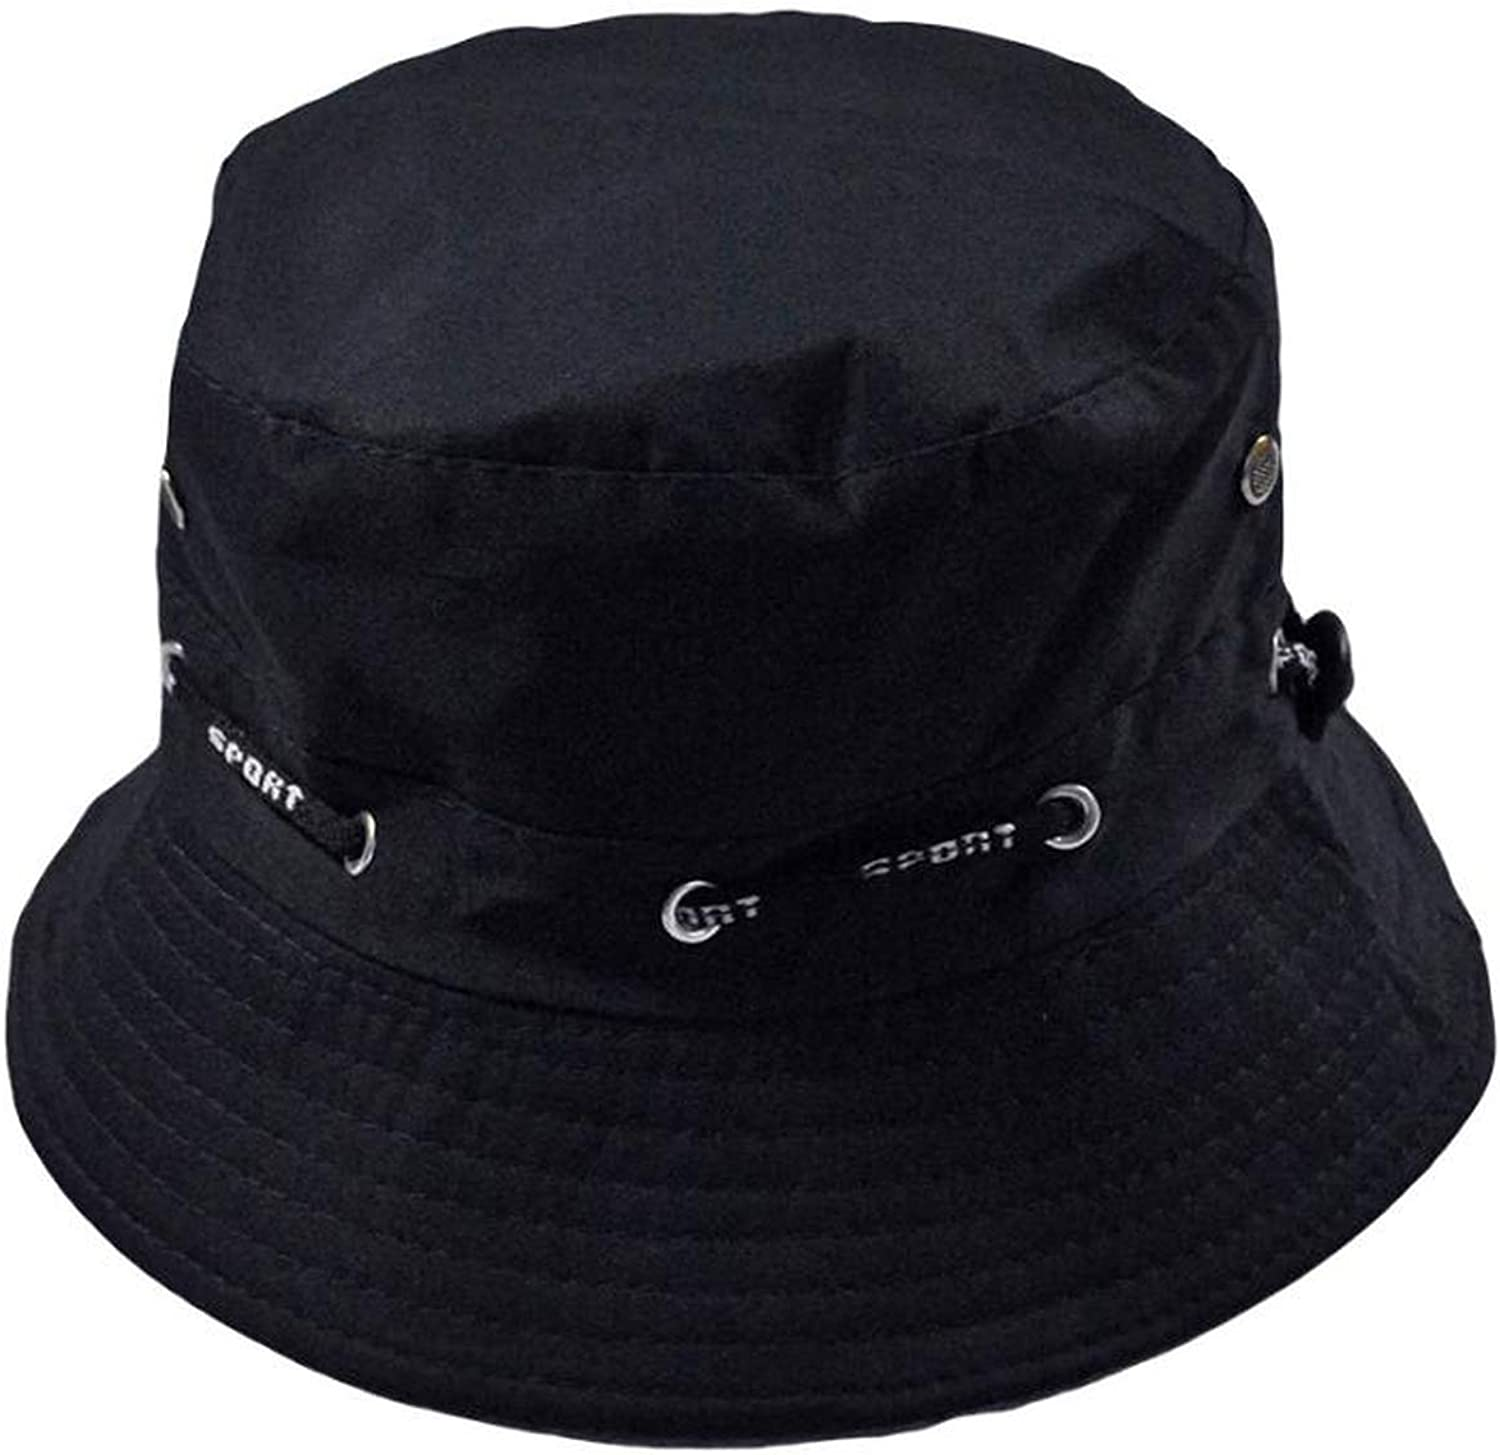 Men Women Unisex Cotton Bucket Hat Double Side Fishing Boonie Bush Cap Visor Sun Bucket hat Hip hop Gorras